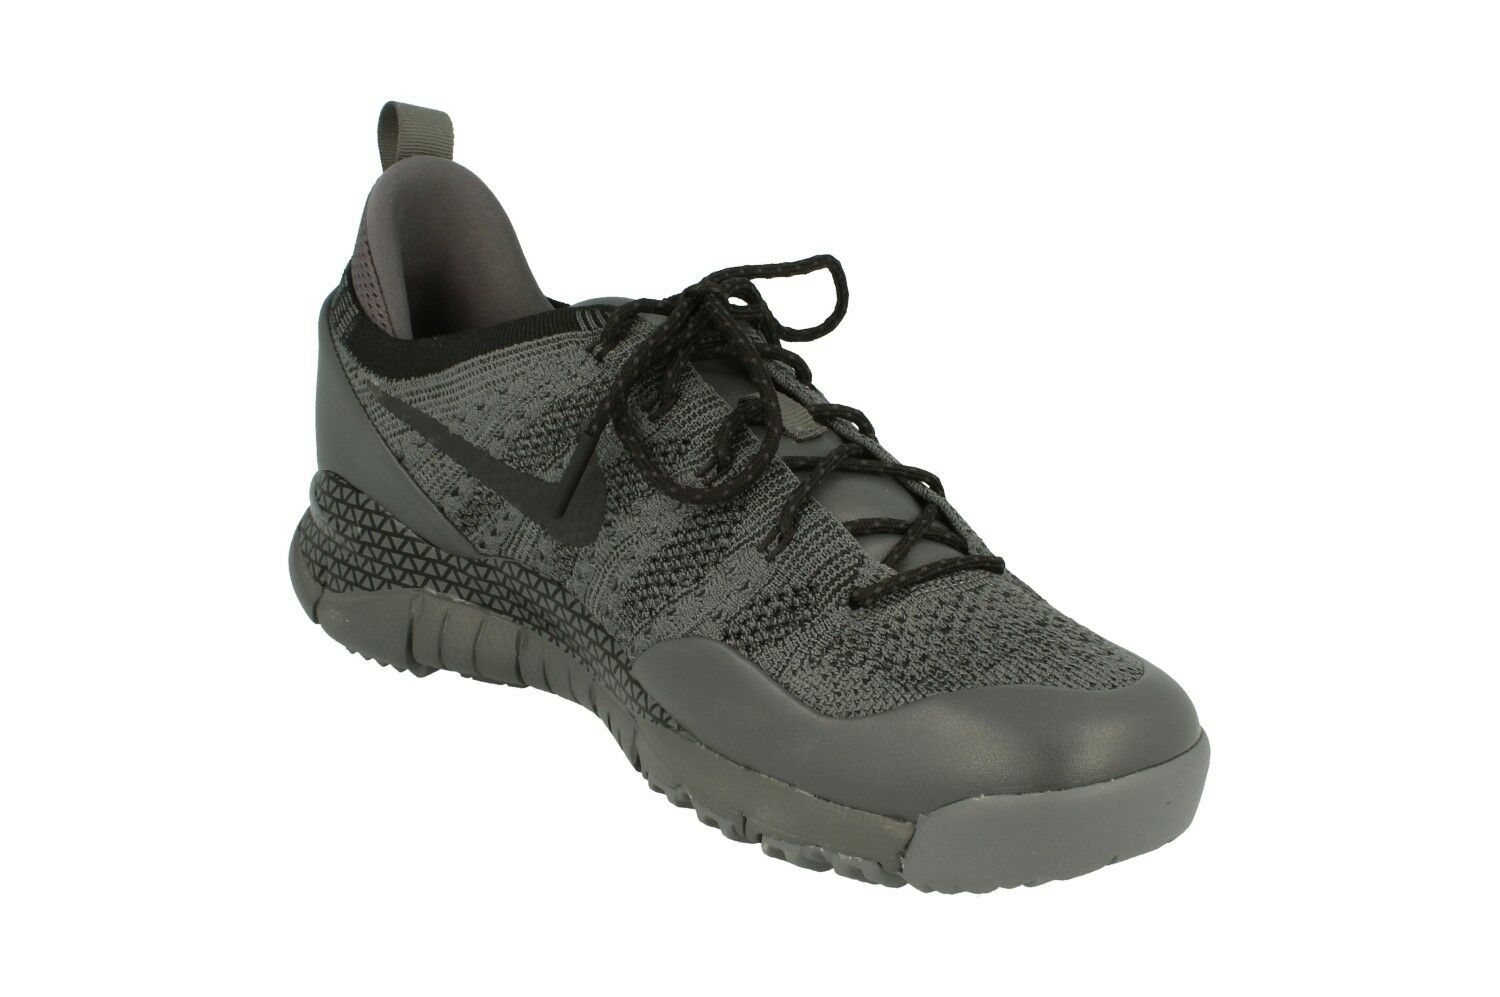 Nike Lupinek Flyknit Low Hommes Running Trainers 882685 Baskets Chaussure 001 001 Chaussure bbc72c